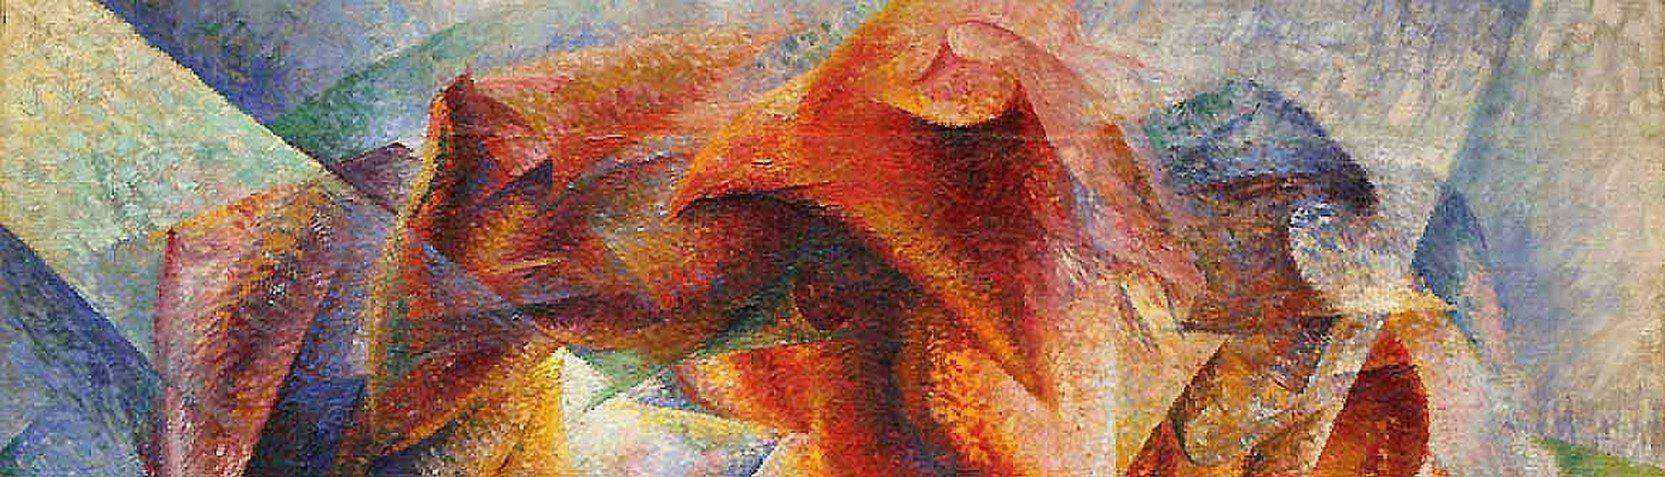 Artists - Umberto Boccioni